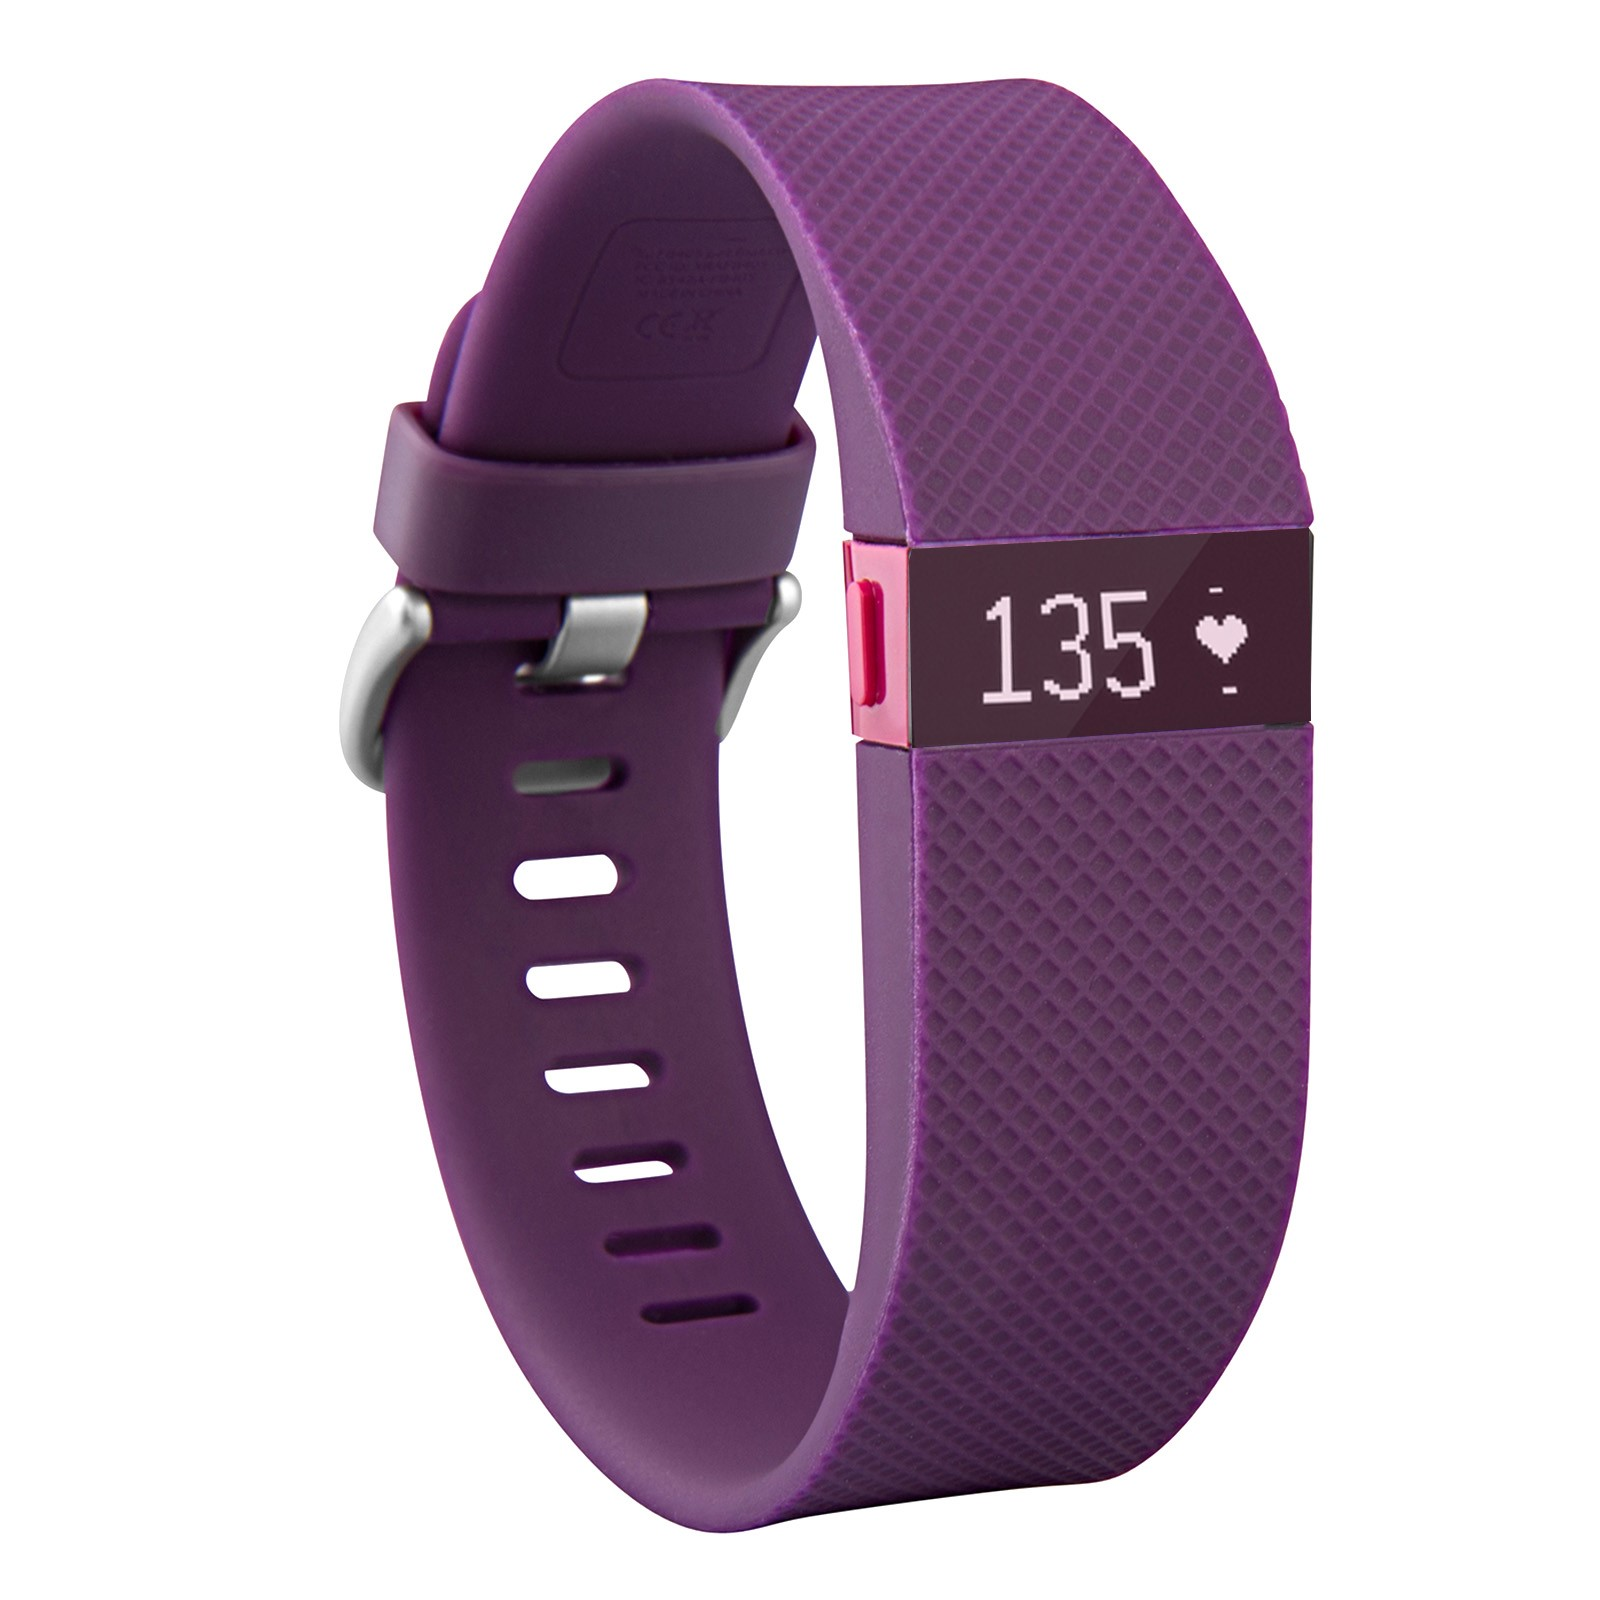 Fitbit Charge HR Heart Rate and Wireless Activity Wristband  - Purple-Small (Certified Refurbished)